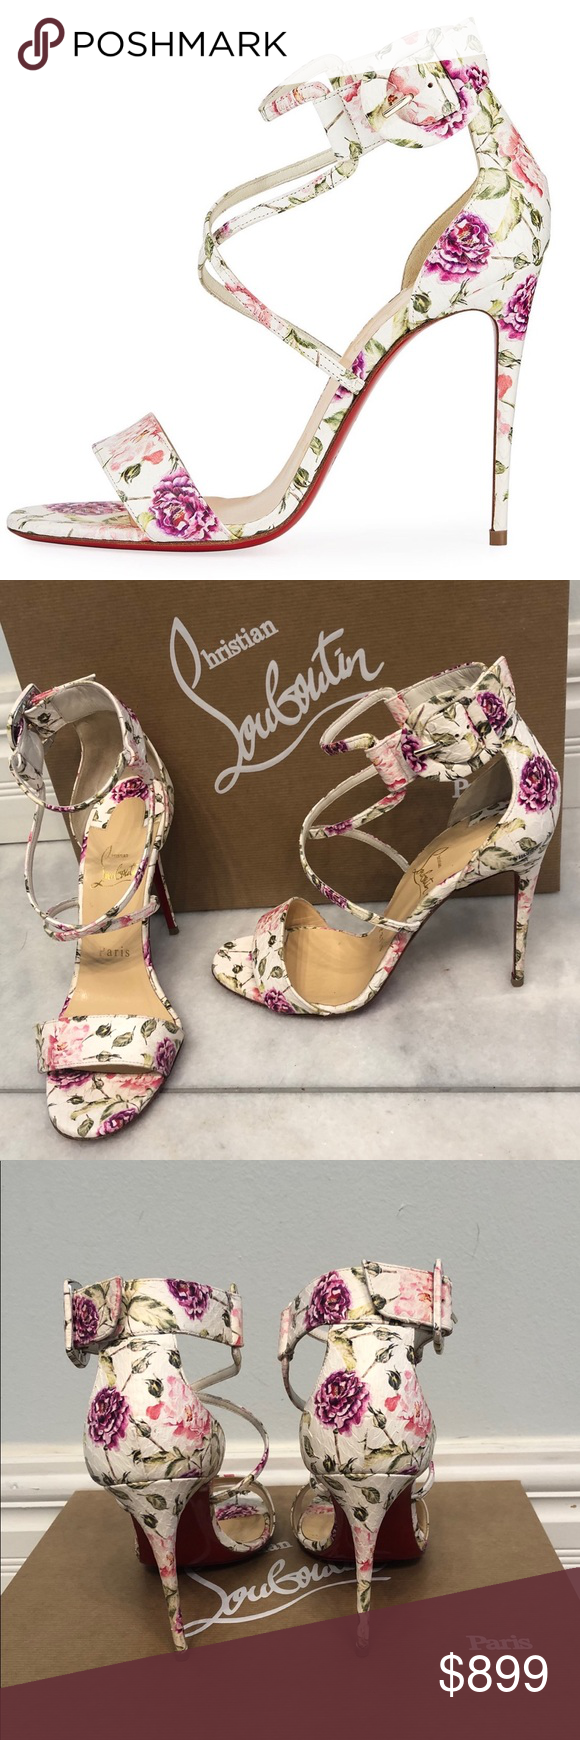 a8709bb25c Christian Louboutin Choca Floral Snake Sandals Limited edition Choca Floral  Snake Red Sole Sandals worn once